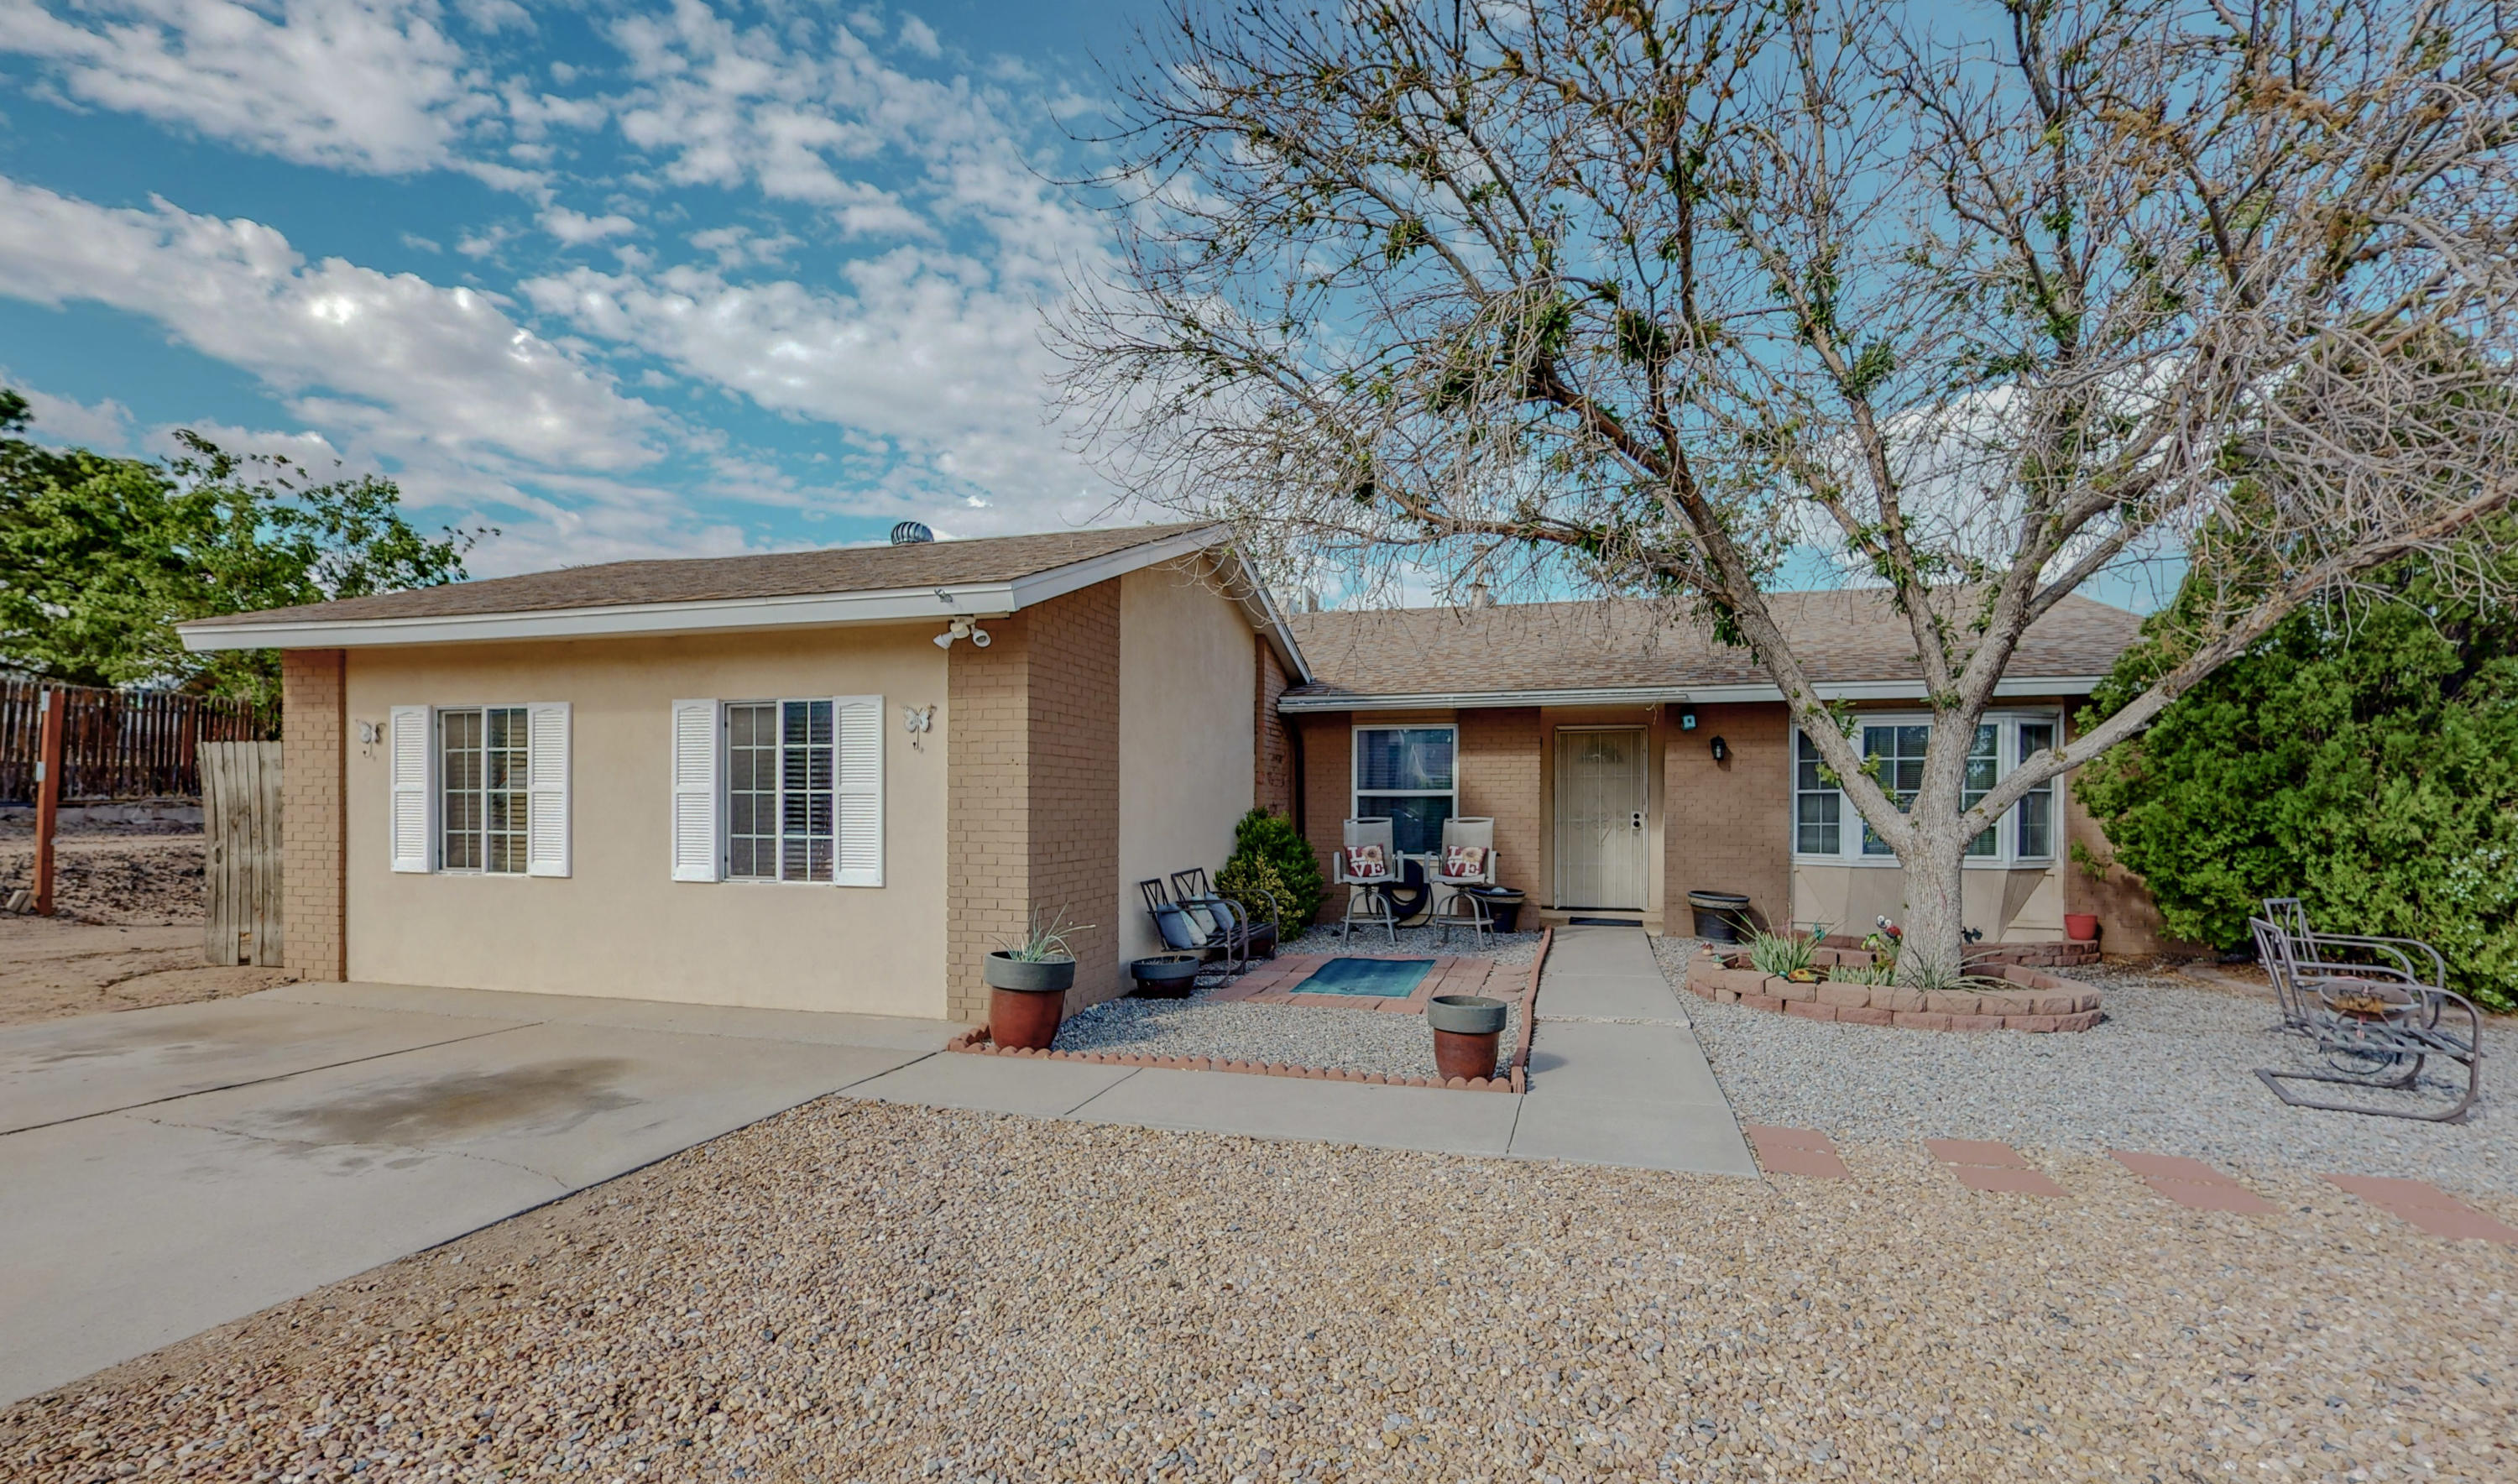 Come see this cute and clean three bedroom with bonus room NW home.  A lot of room to spread out. Great paint colors, nice tile.  French doors open to the nice size back patio.  Low maintenance SW natural landscaping. Large corner lot in a cul-de-sac.Convenient shopping.